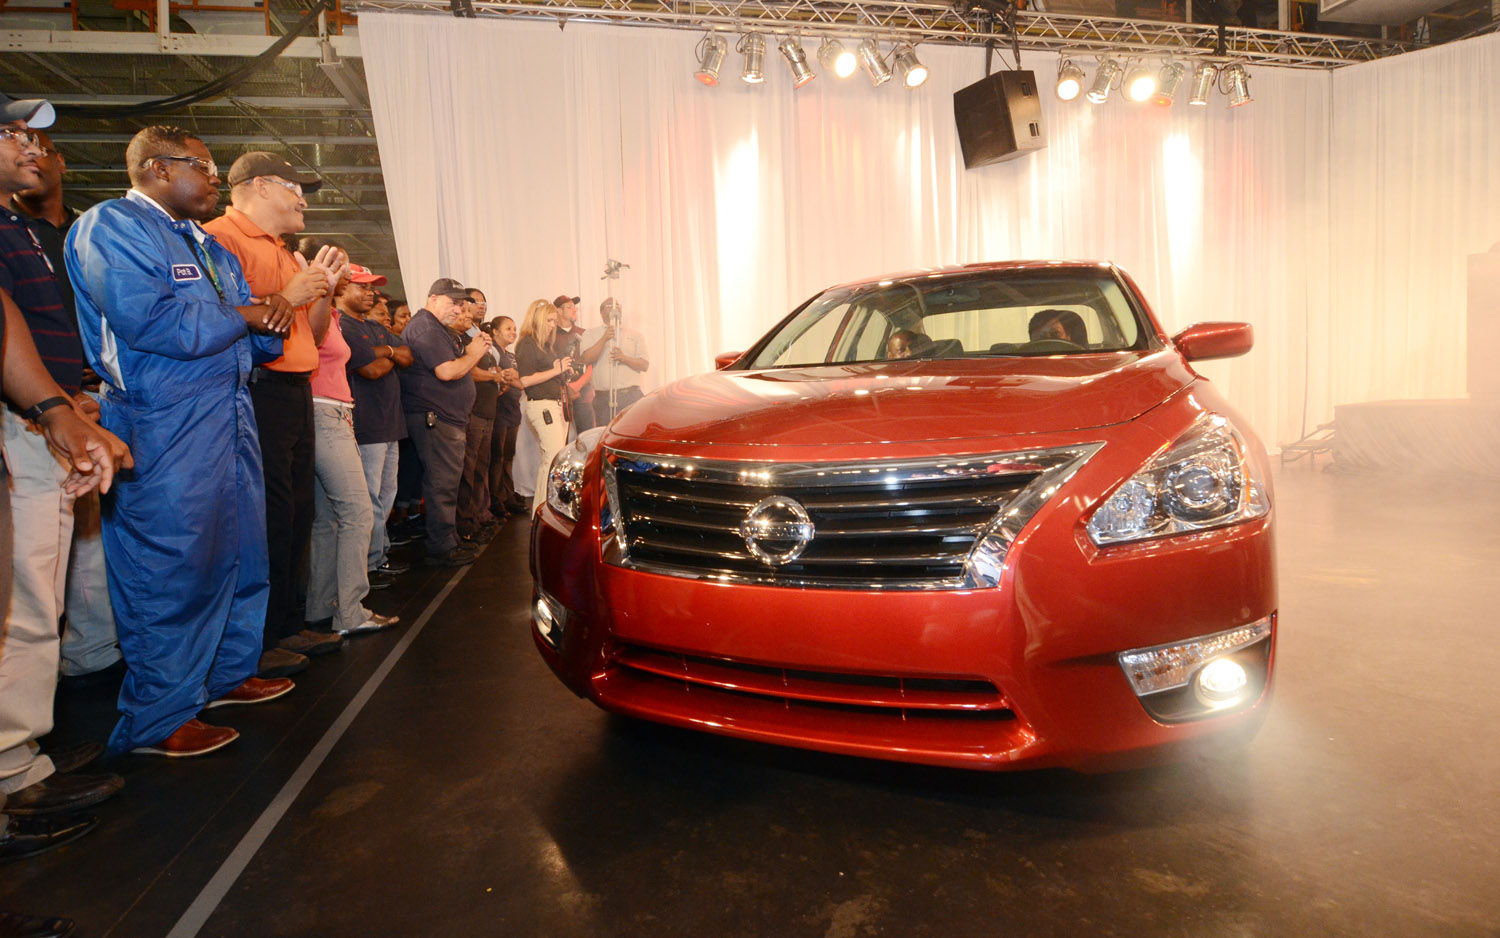 2013 Nissan Altima Rolls Off Line In Mississippi, Will Get 38 MPG Highway